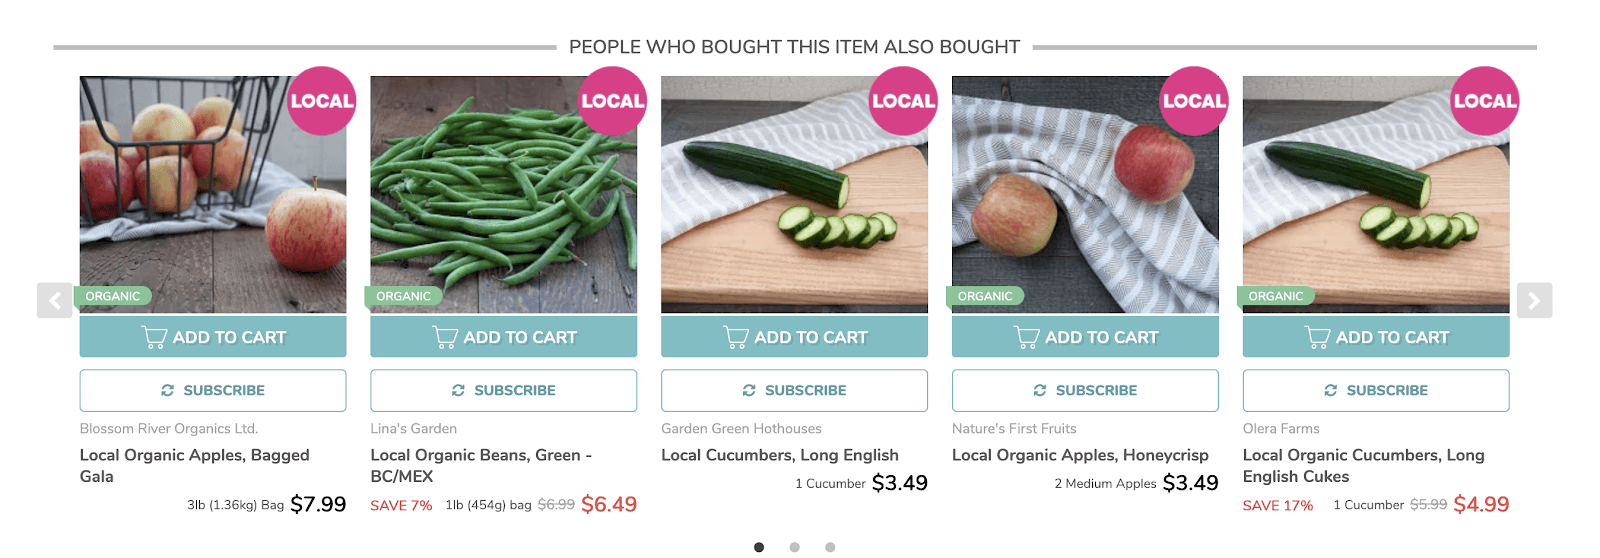 ux tip to grow an online grocery business